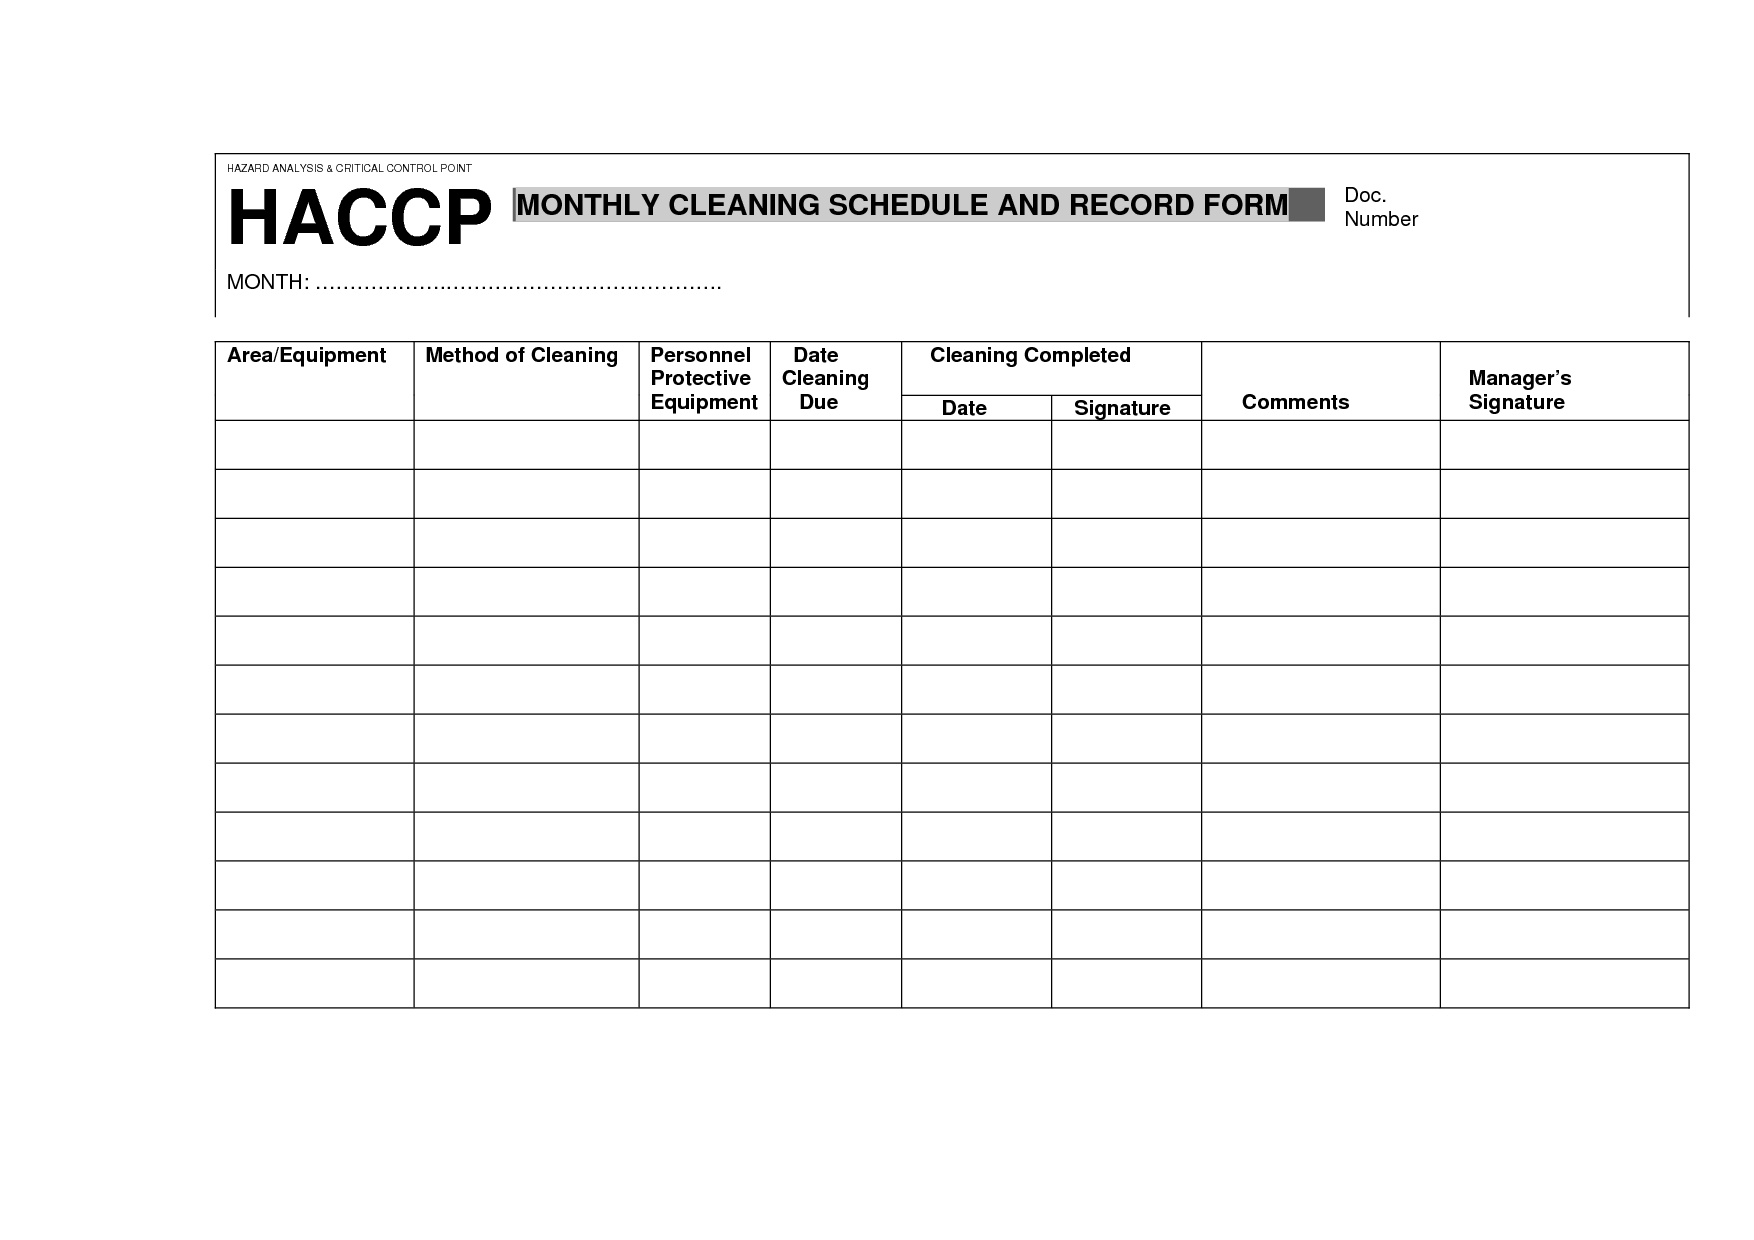 Haccp Cleaning Schedule And Record Form